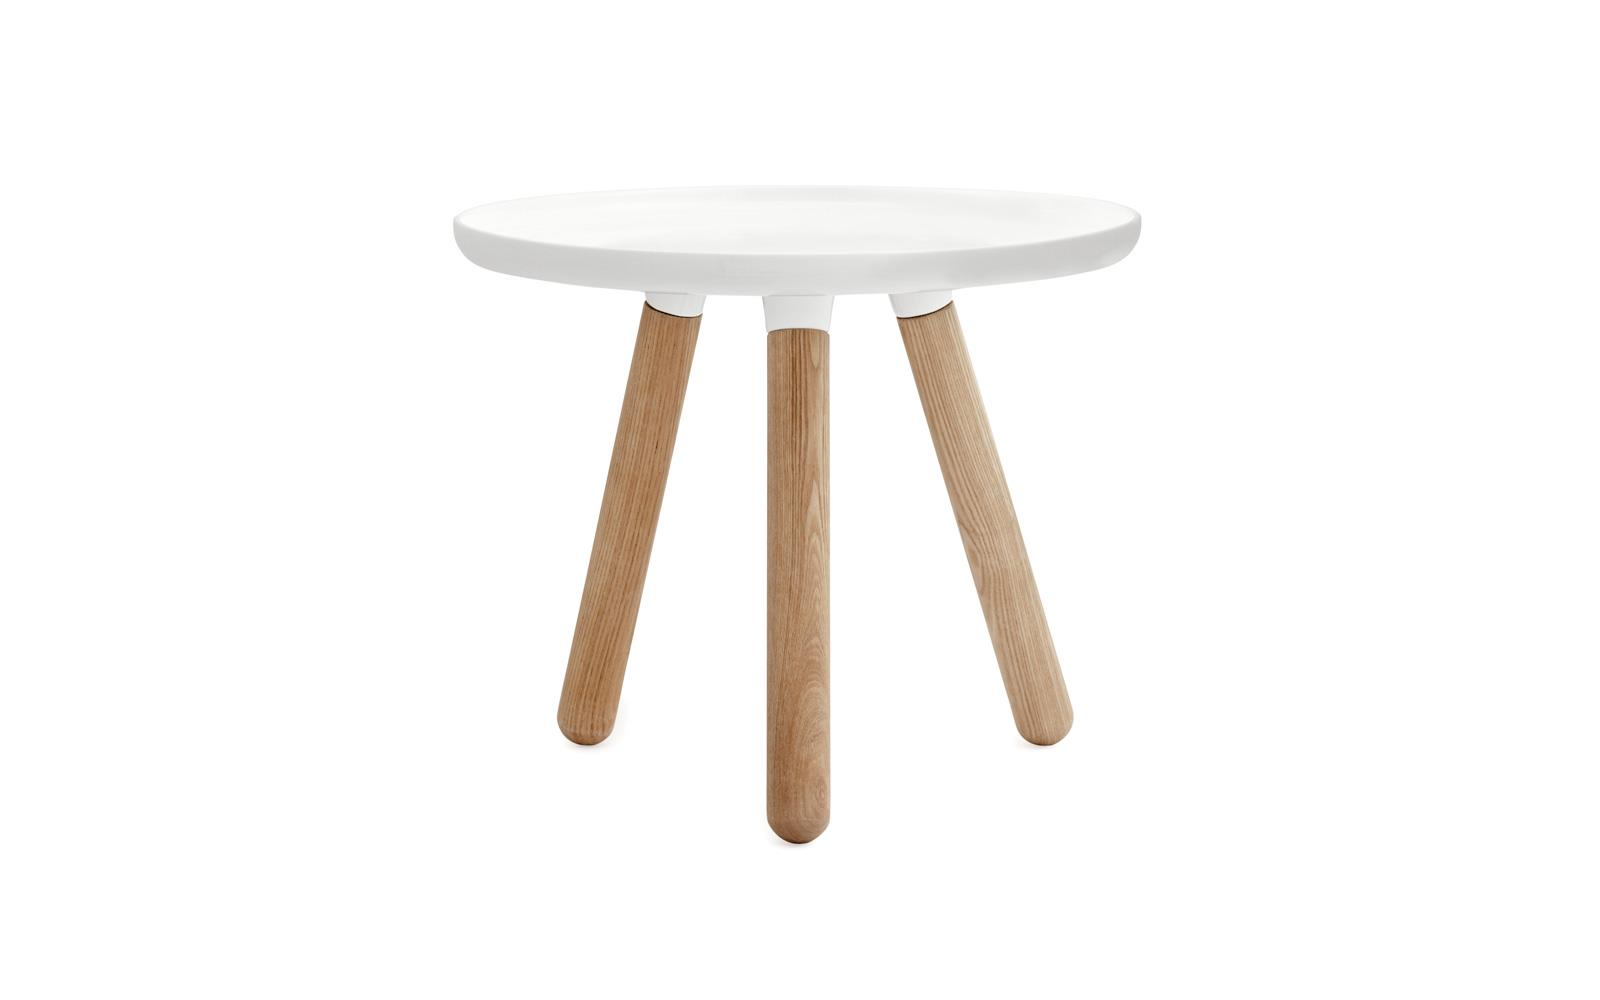 Tablo Table A Minimalistic Coffee Table In White With Legs Of Ash